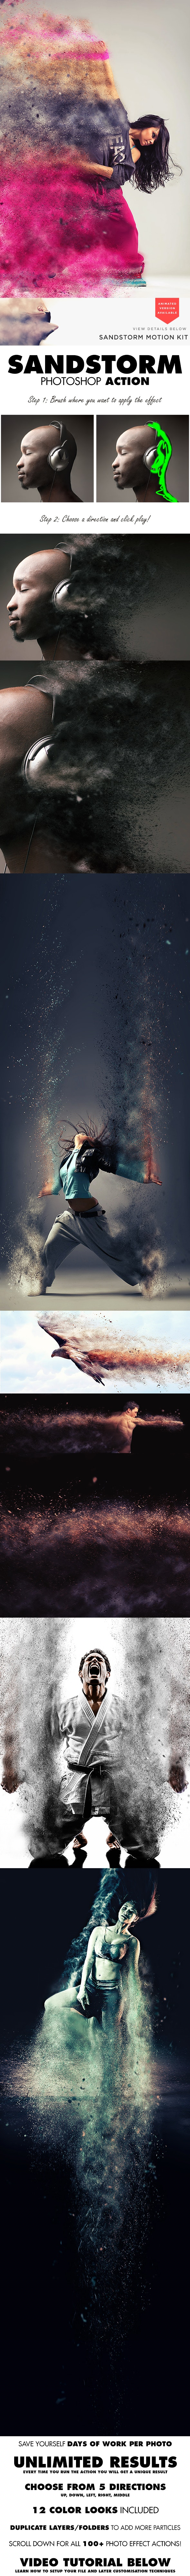 Photoshop Aktion Sandstorm